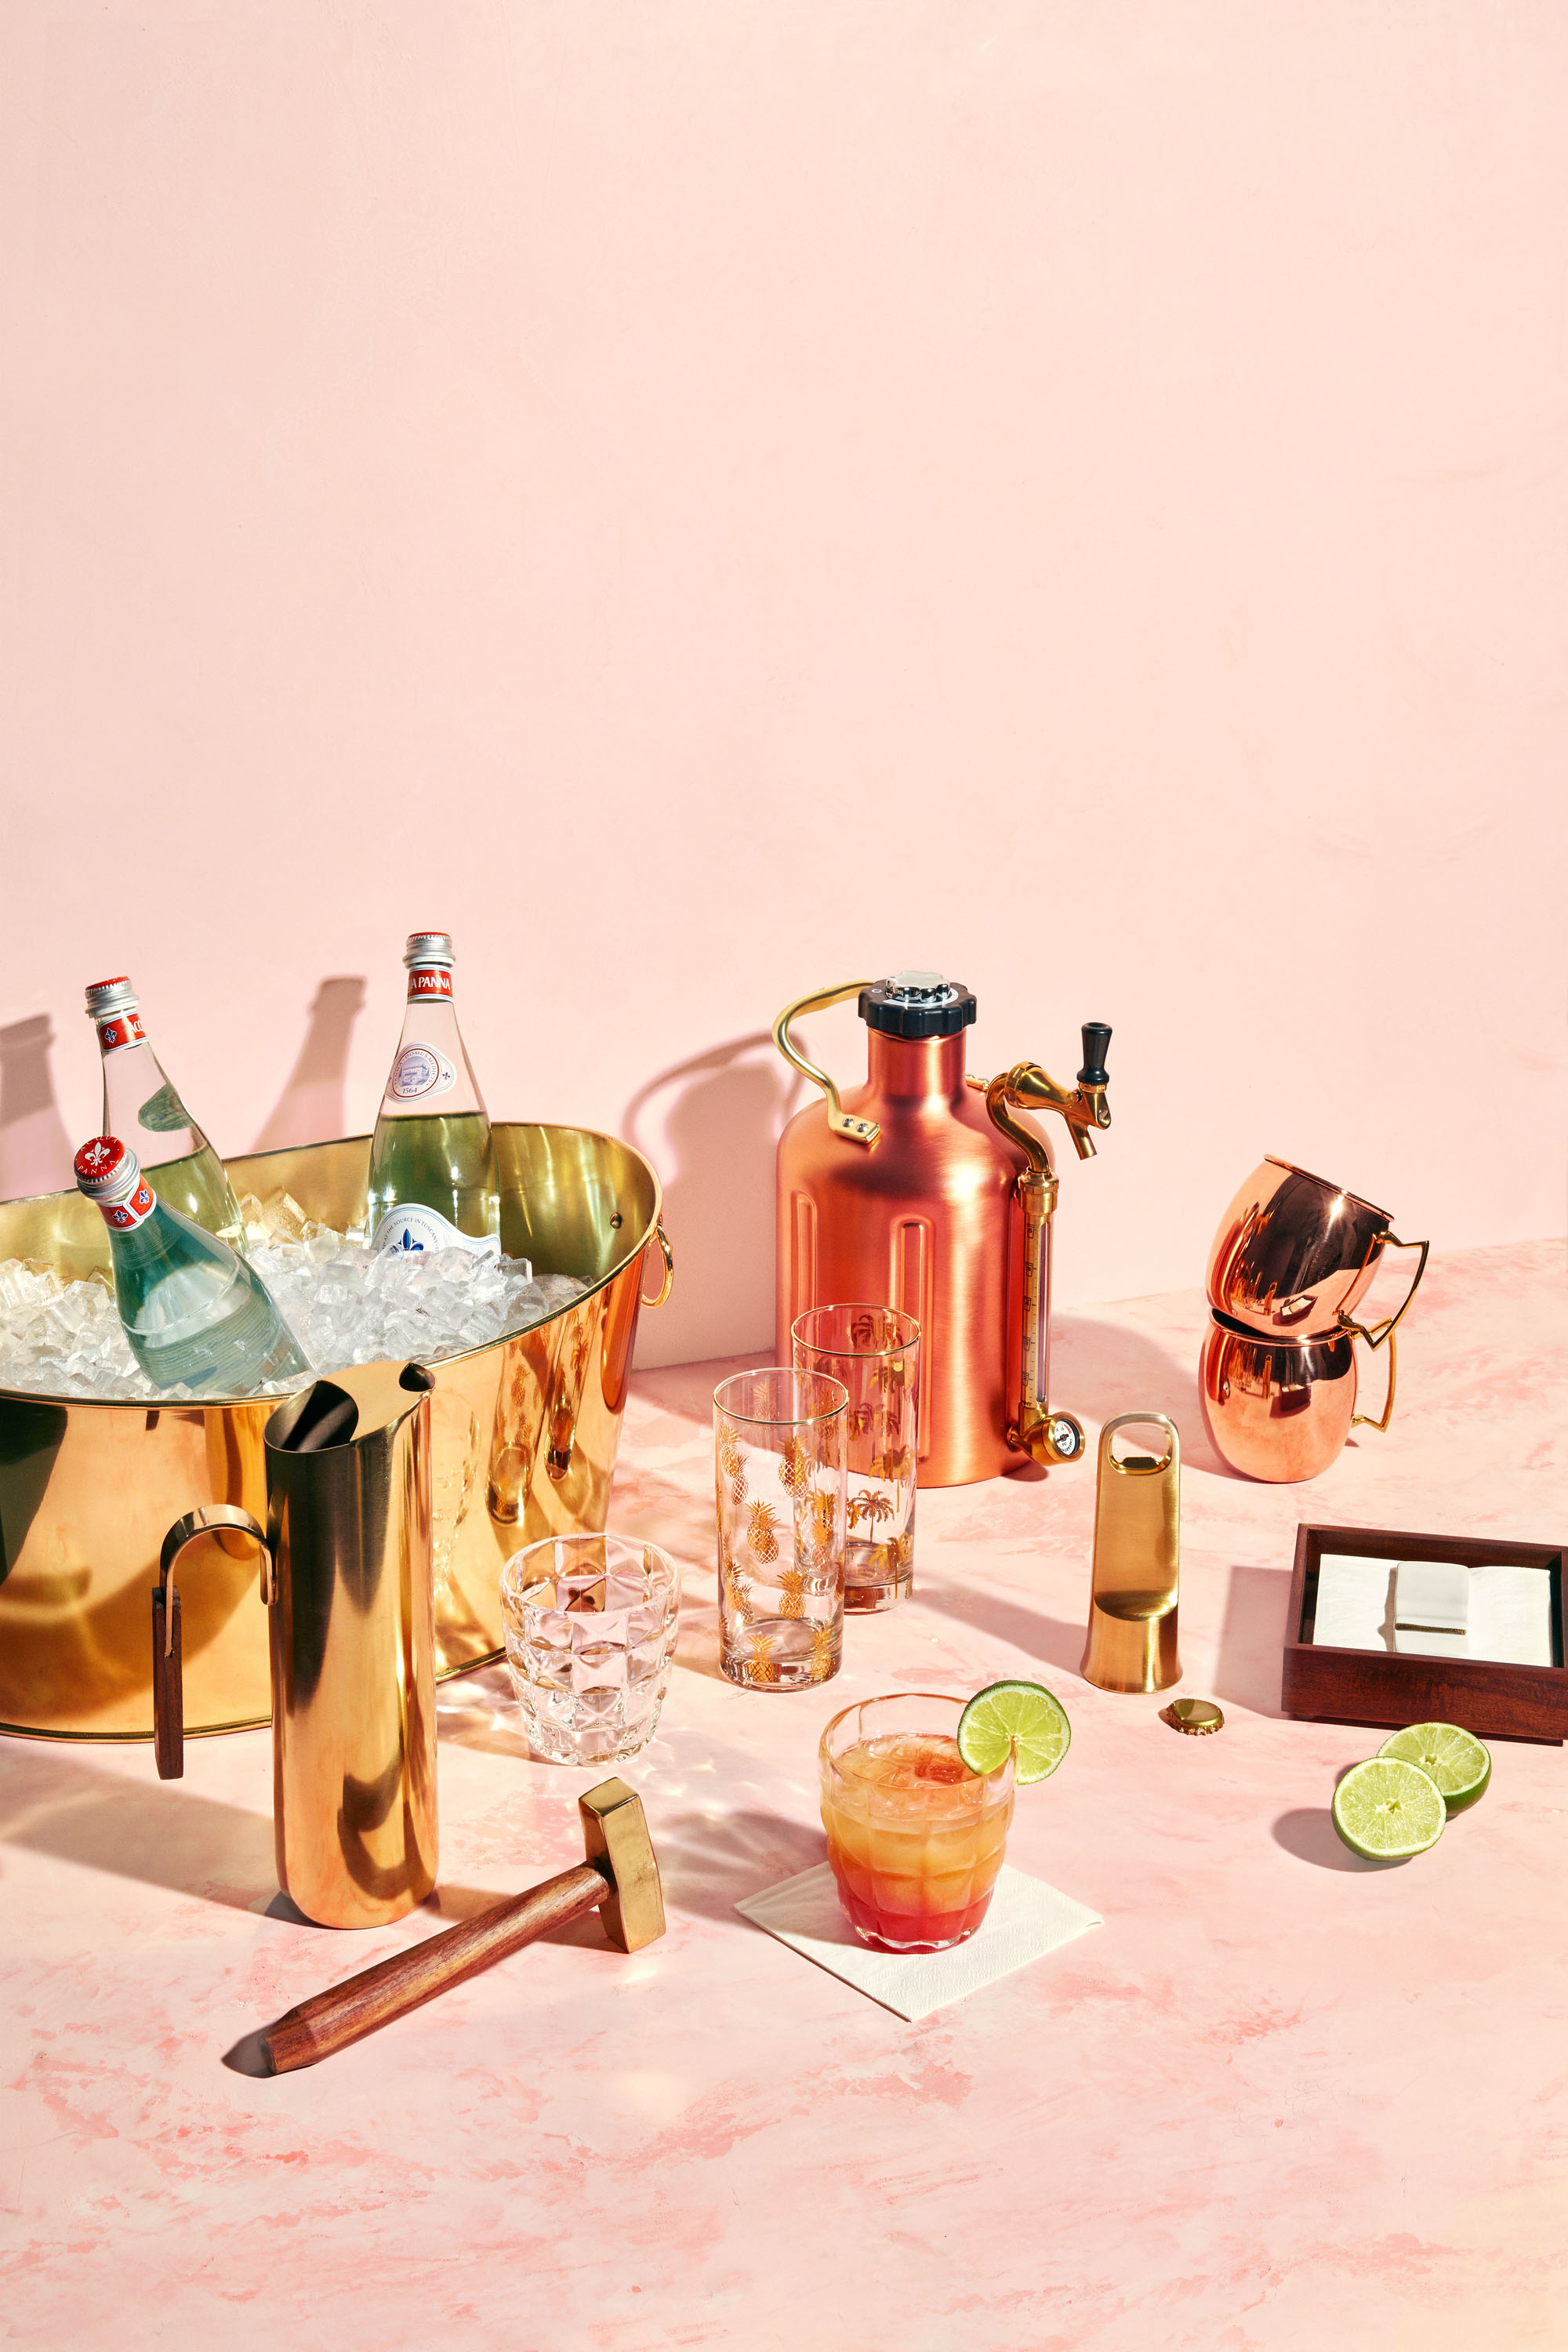 How to Register for Cocktail Essentials by Season